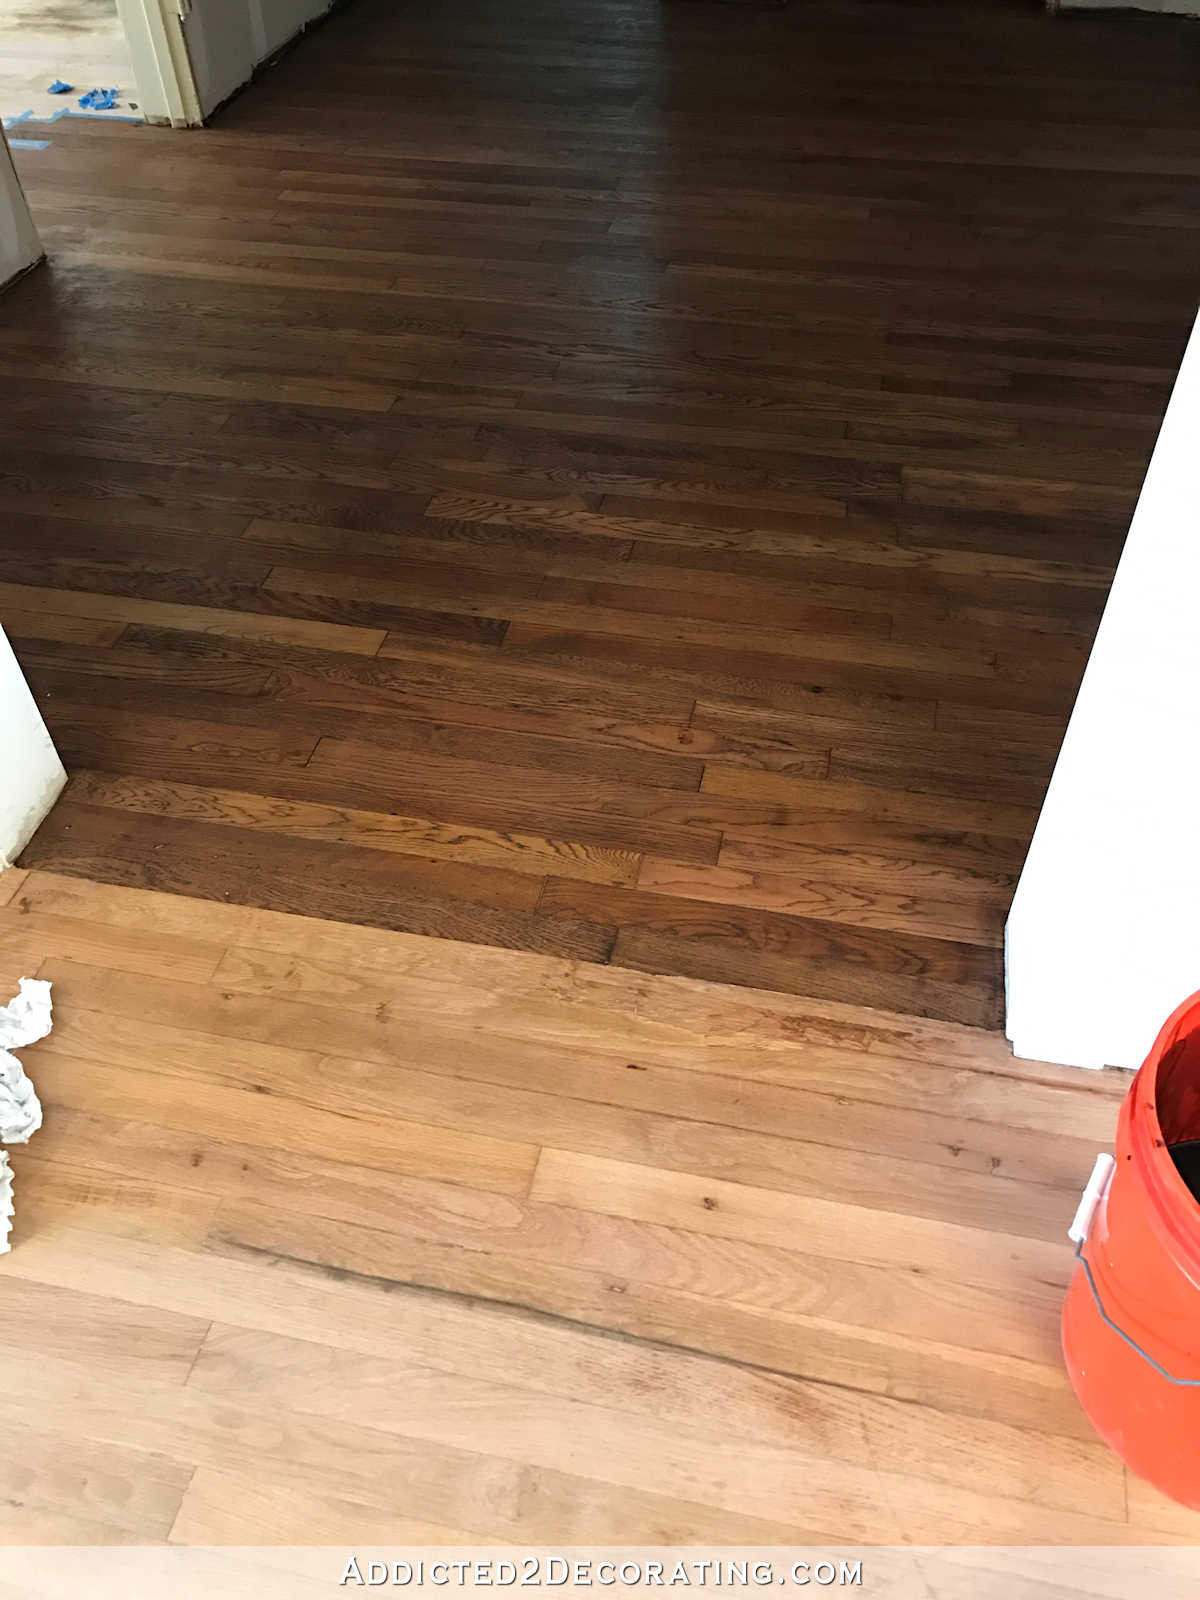 popular hardwood floor stain colors 2017 of adventures in staining my red oak hardwood floors products process regarding staining red oak hardwood floors 2 tape off one section at a time for